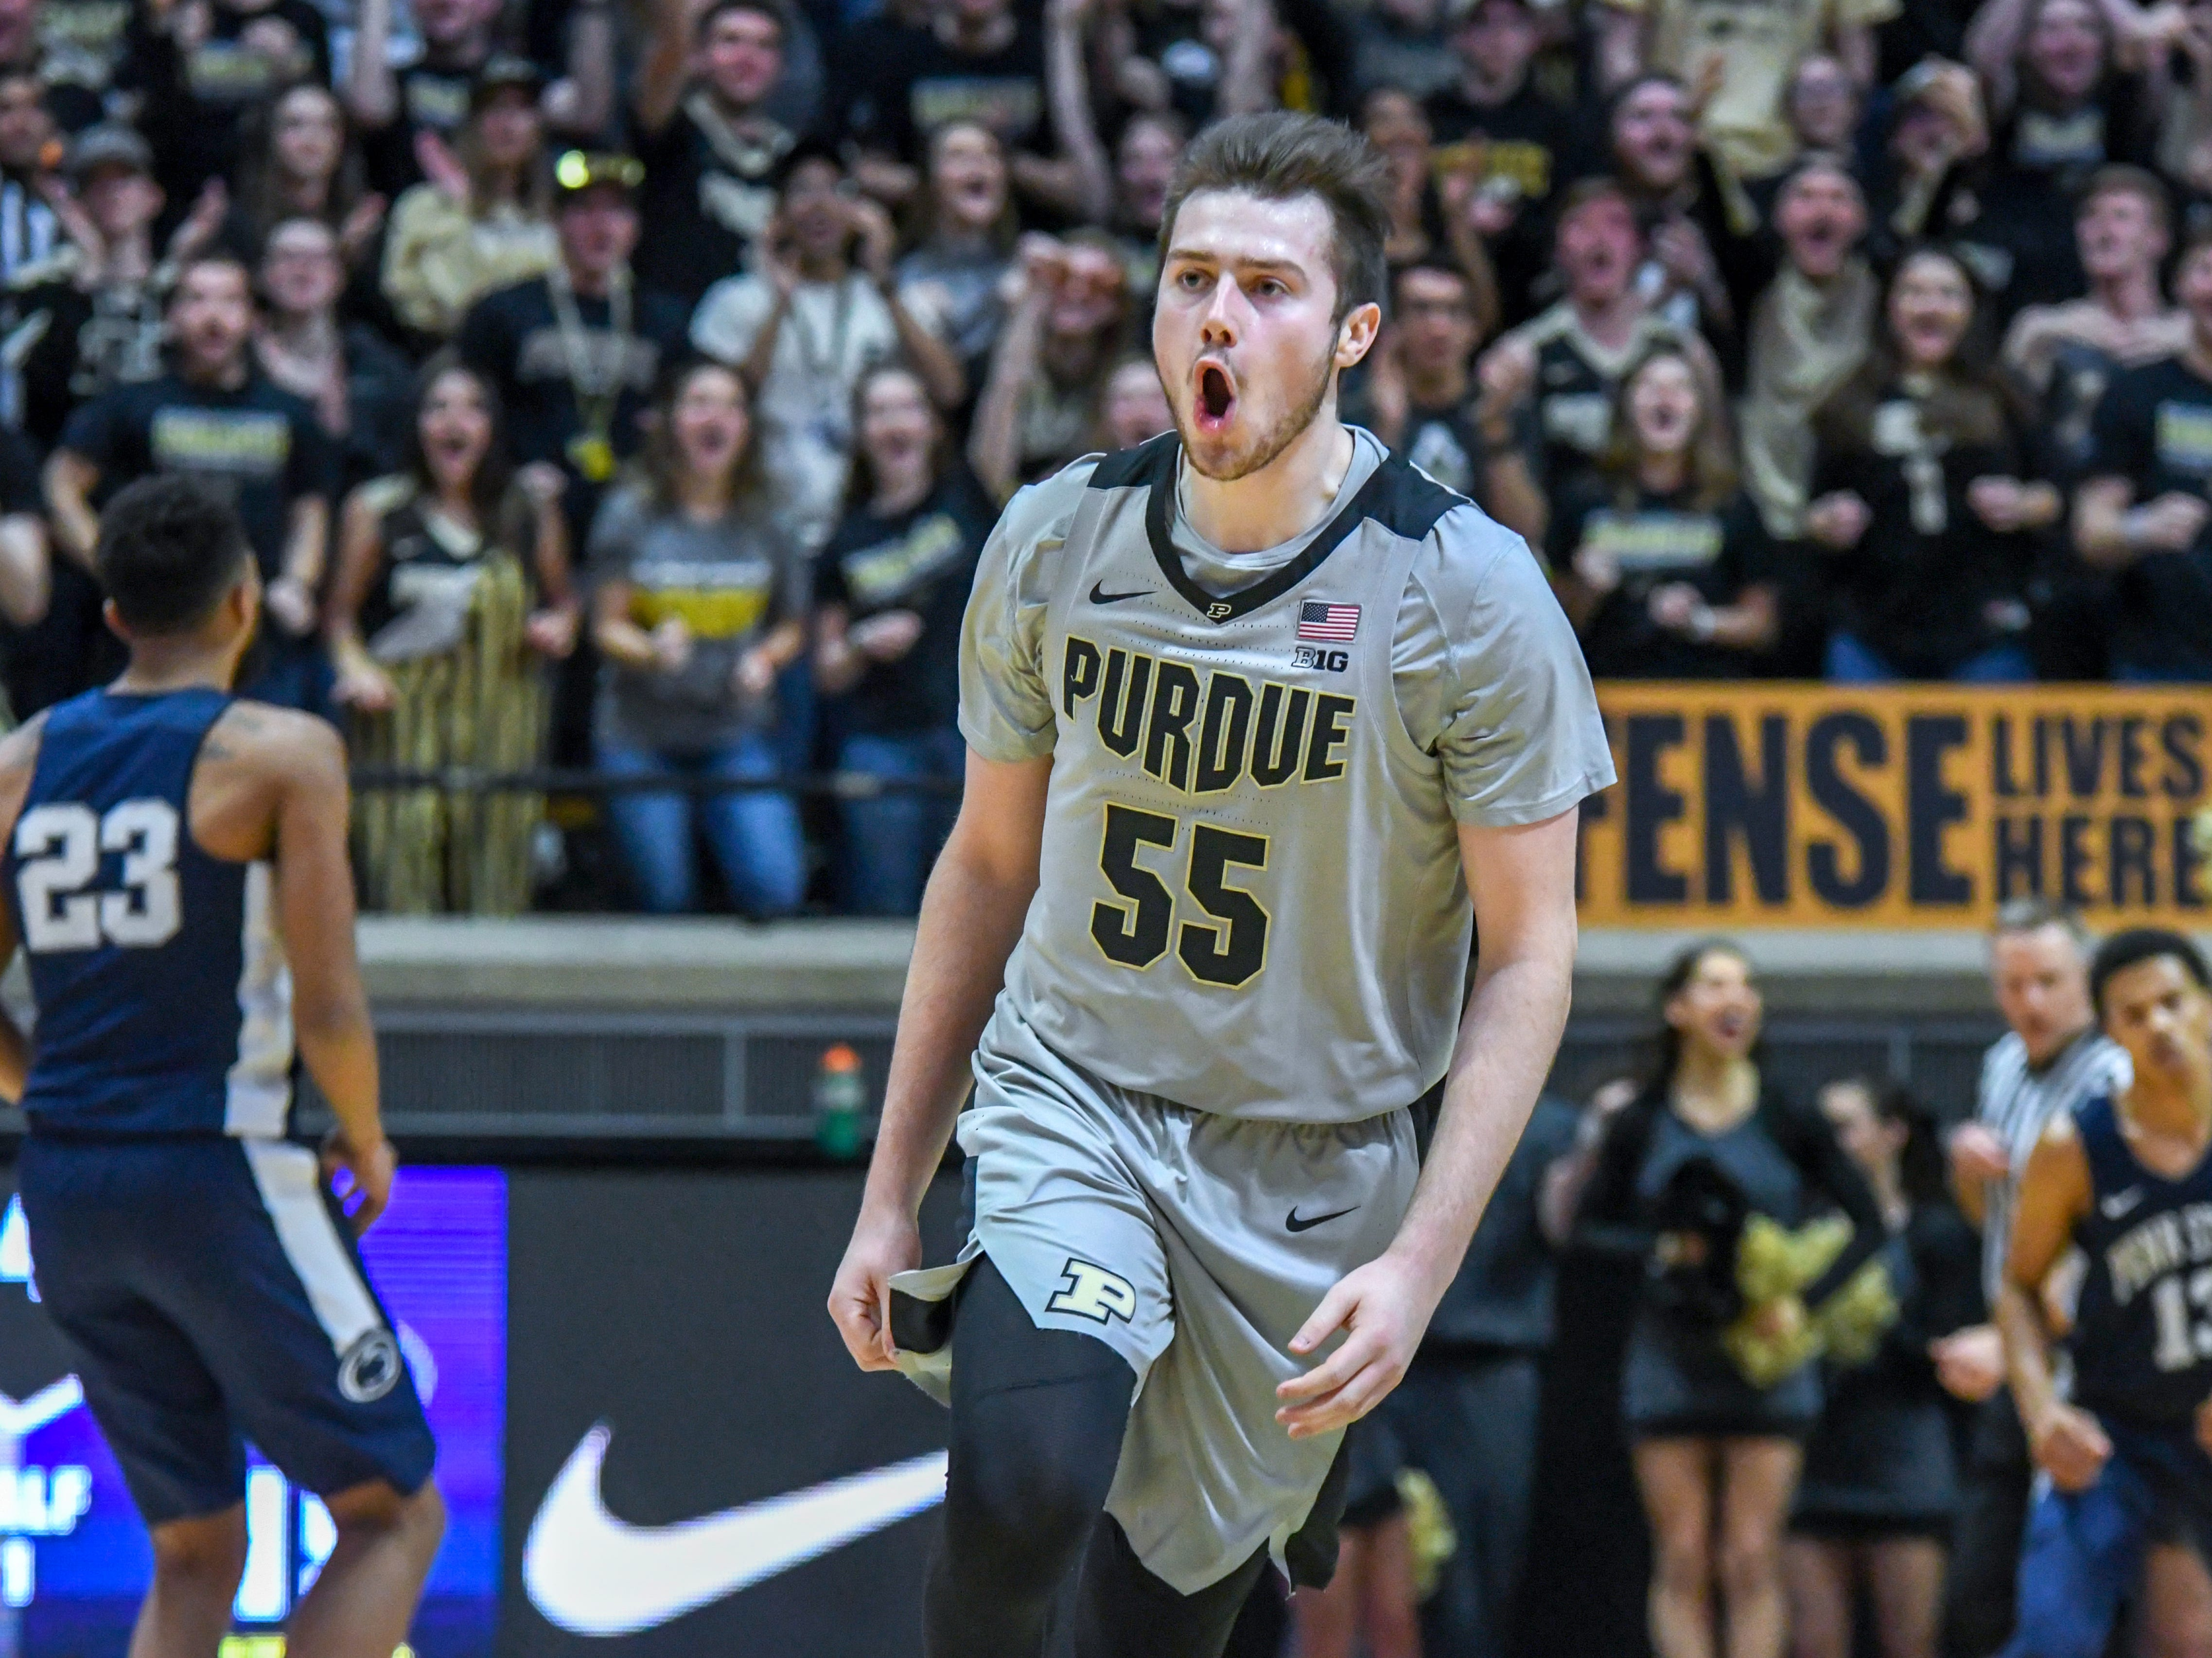 By Frank Oliver for the Journal and Courier -- Purdue's Sasha Stefanovic celebrates hitting a basket in the first half at Purdue on Saturday February 16, 2019.